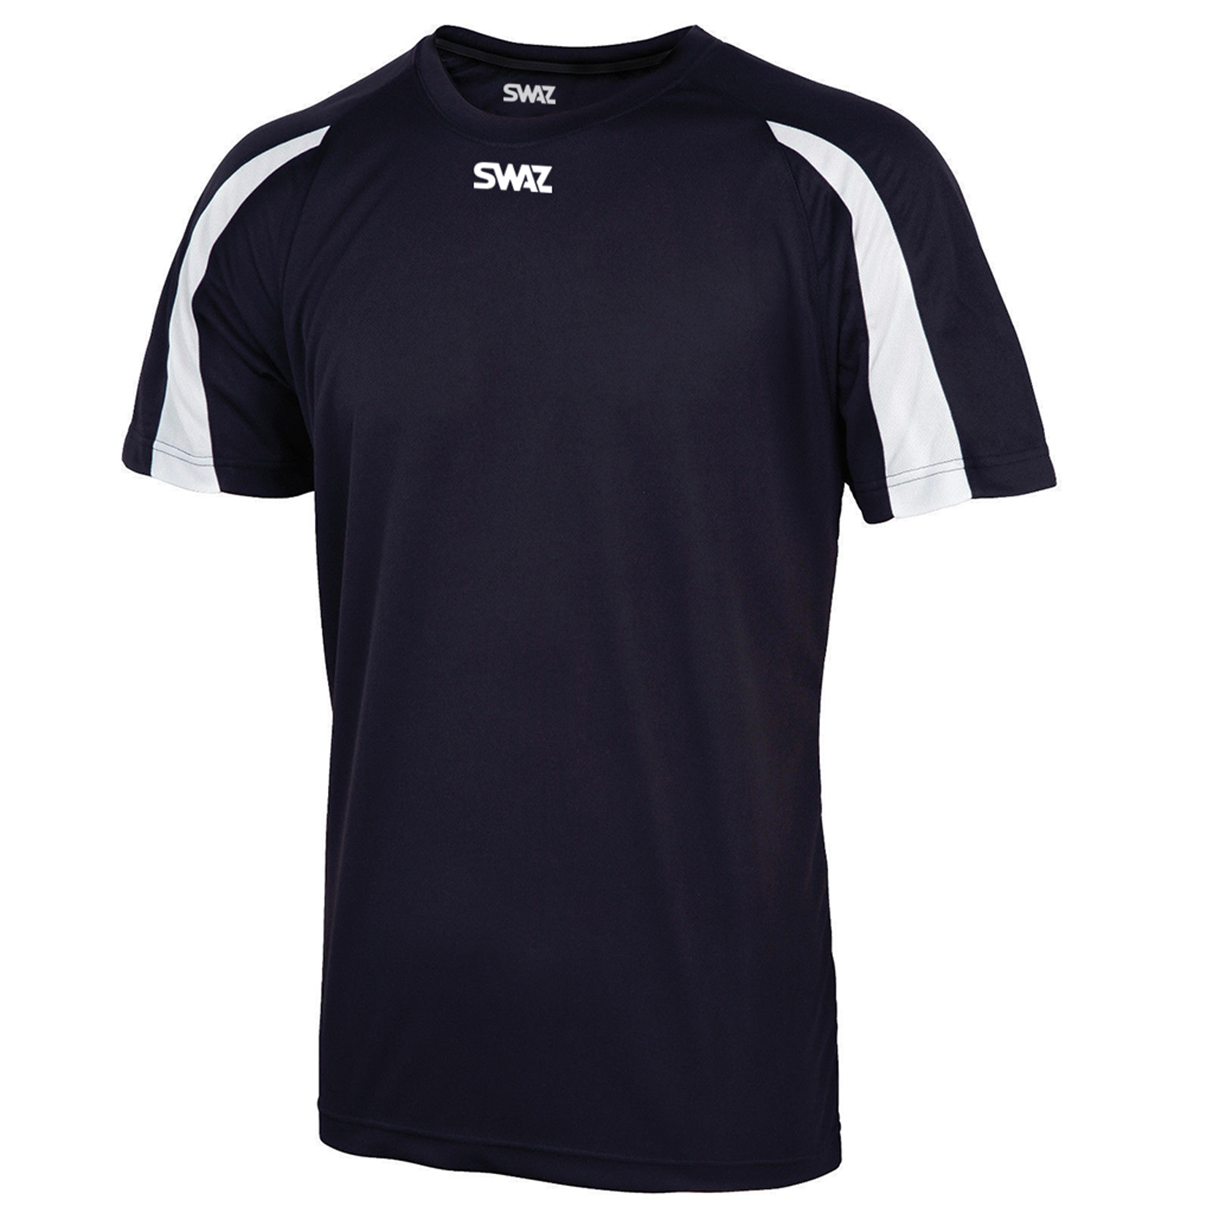 SWAZ Premier Training T-Shirt – Navy/White